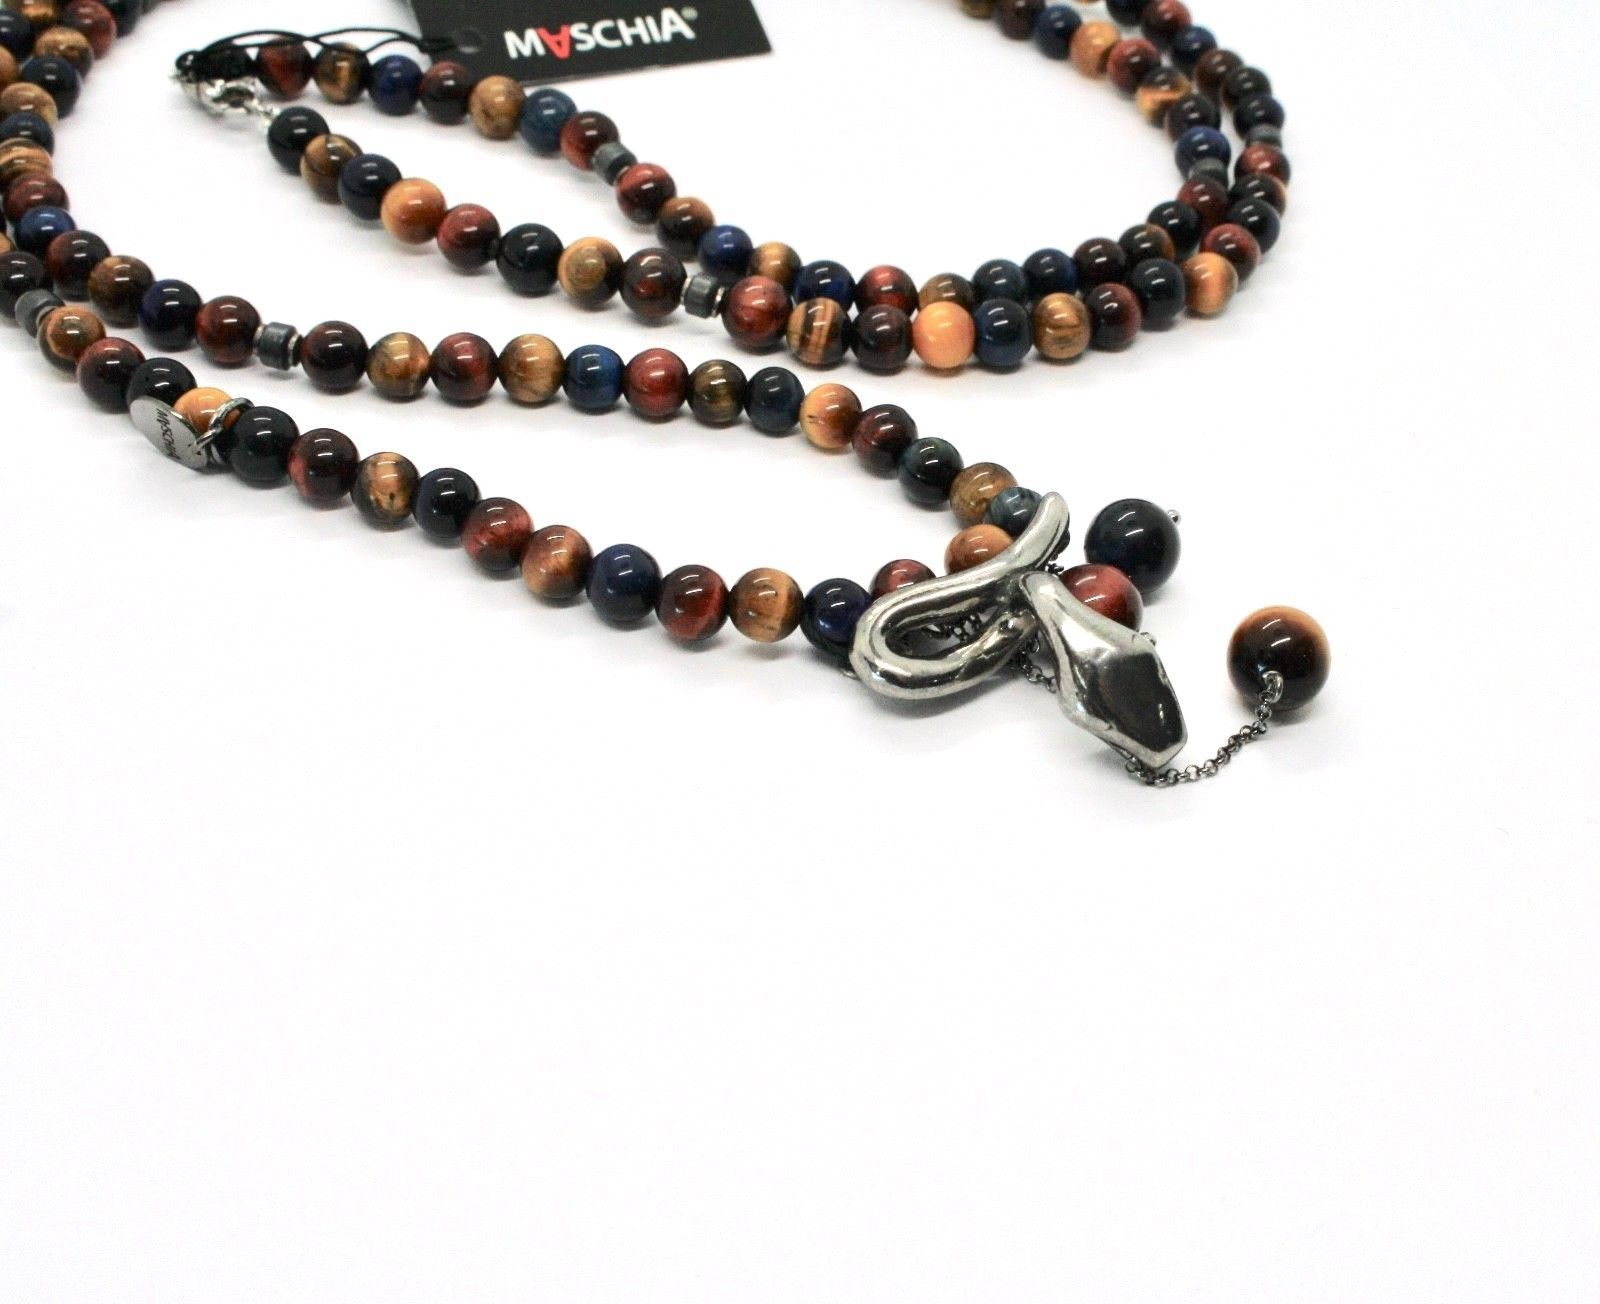 925 Sterling Silver Necklace with Snake & Tiger's Eye Made in Italy by Maschia